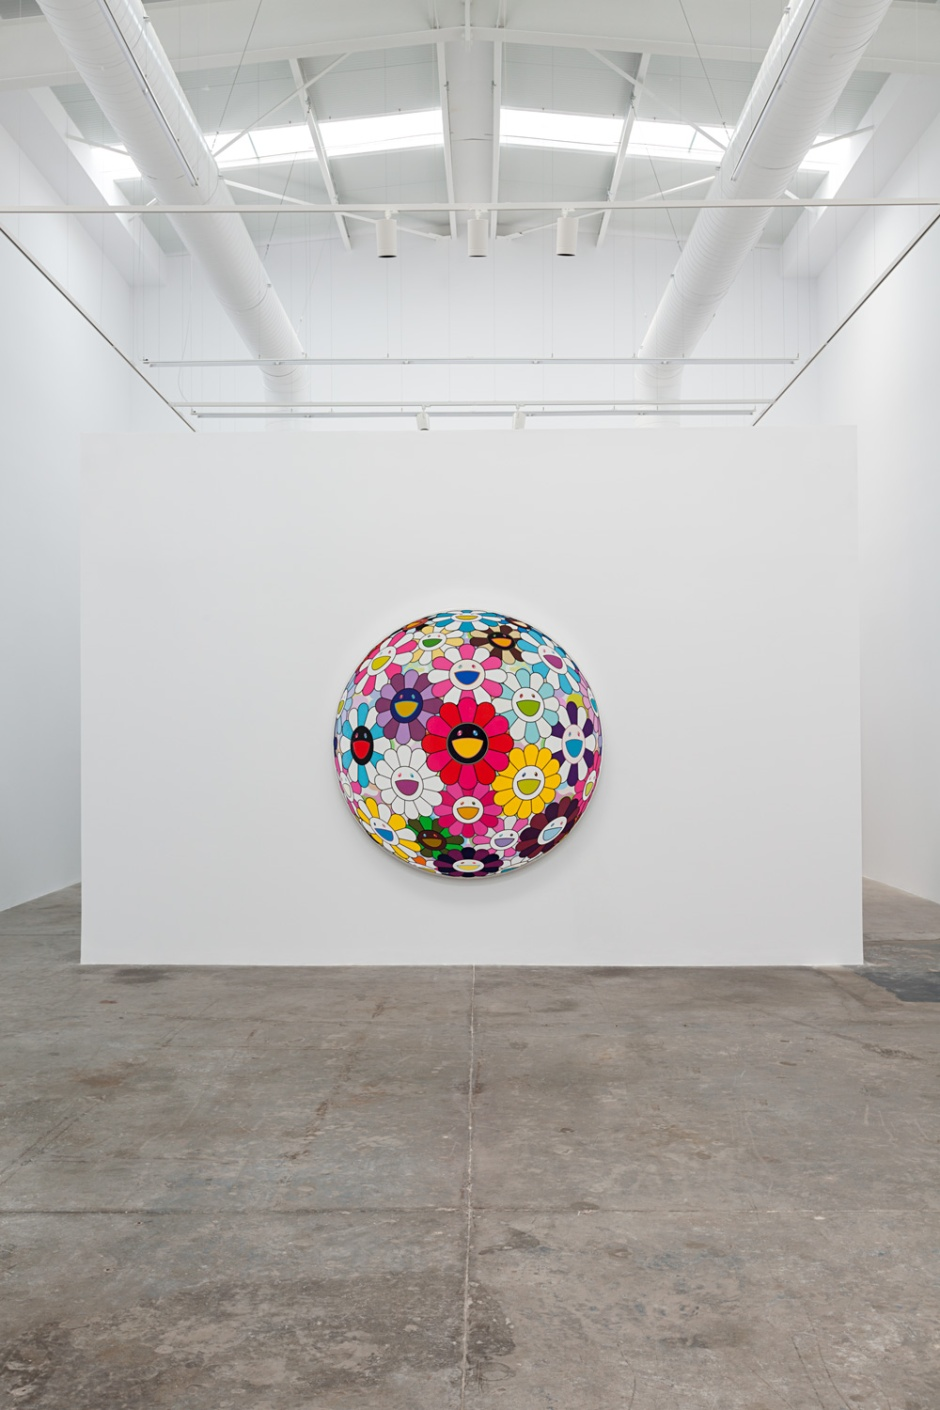 Takashi Murakami, Art Projects Ibiza Installation view, 2015 Artwork © 2015 Takashi Murakami/Kaikai Kiki Co. Ltd. All Rights Reserved. Courtesy of the artist and Blum & Poe, Los Angeles/New York/Tokyo Photography: Andrea Rossetti